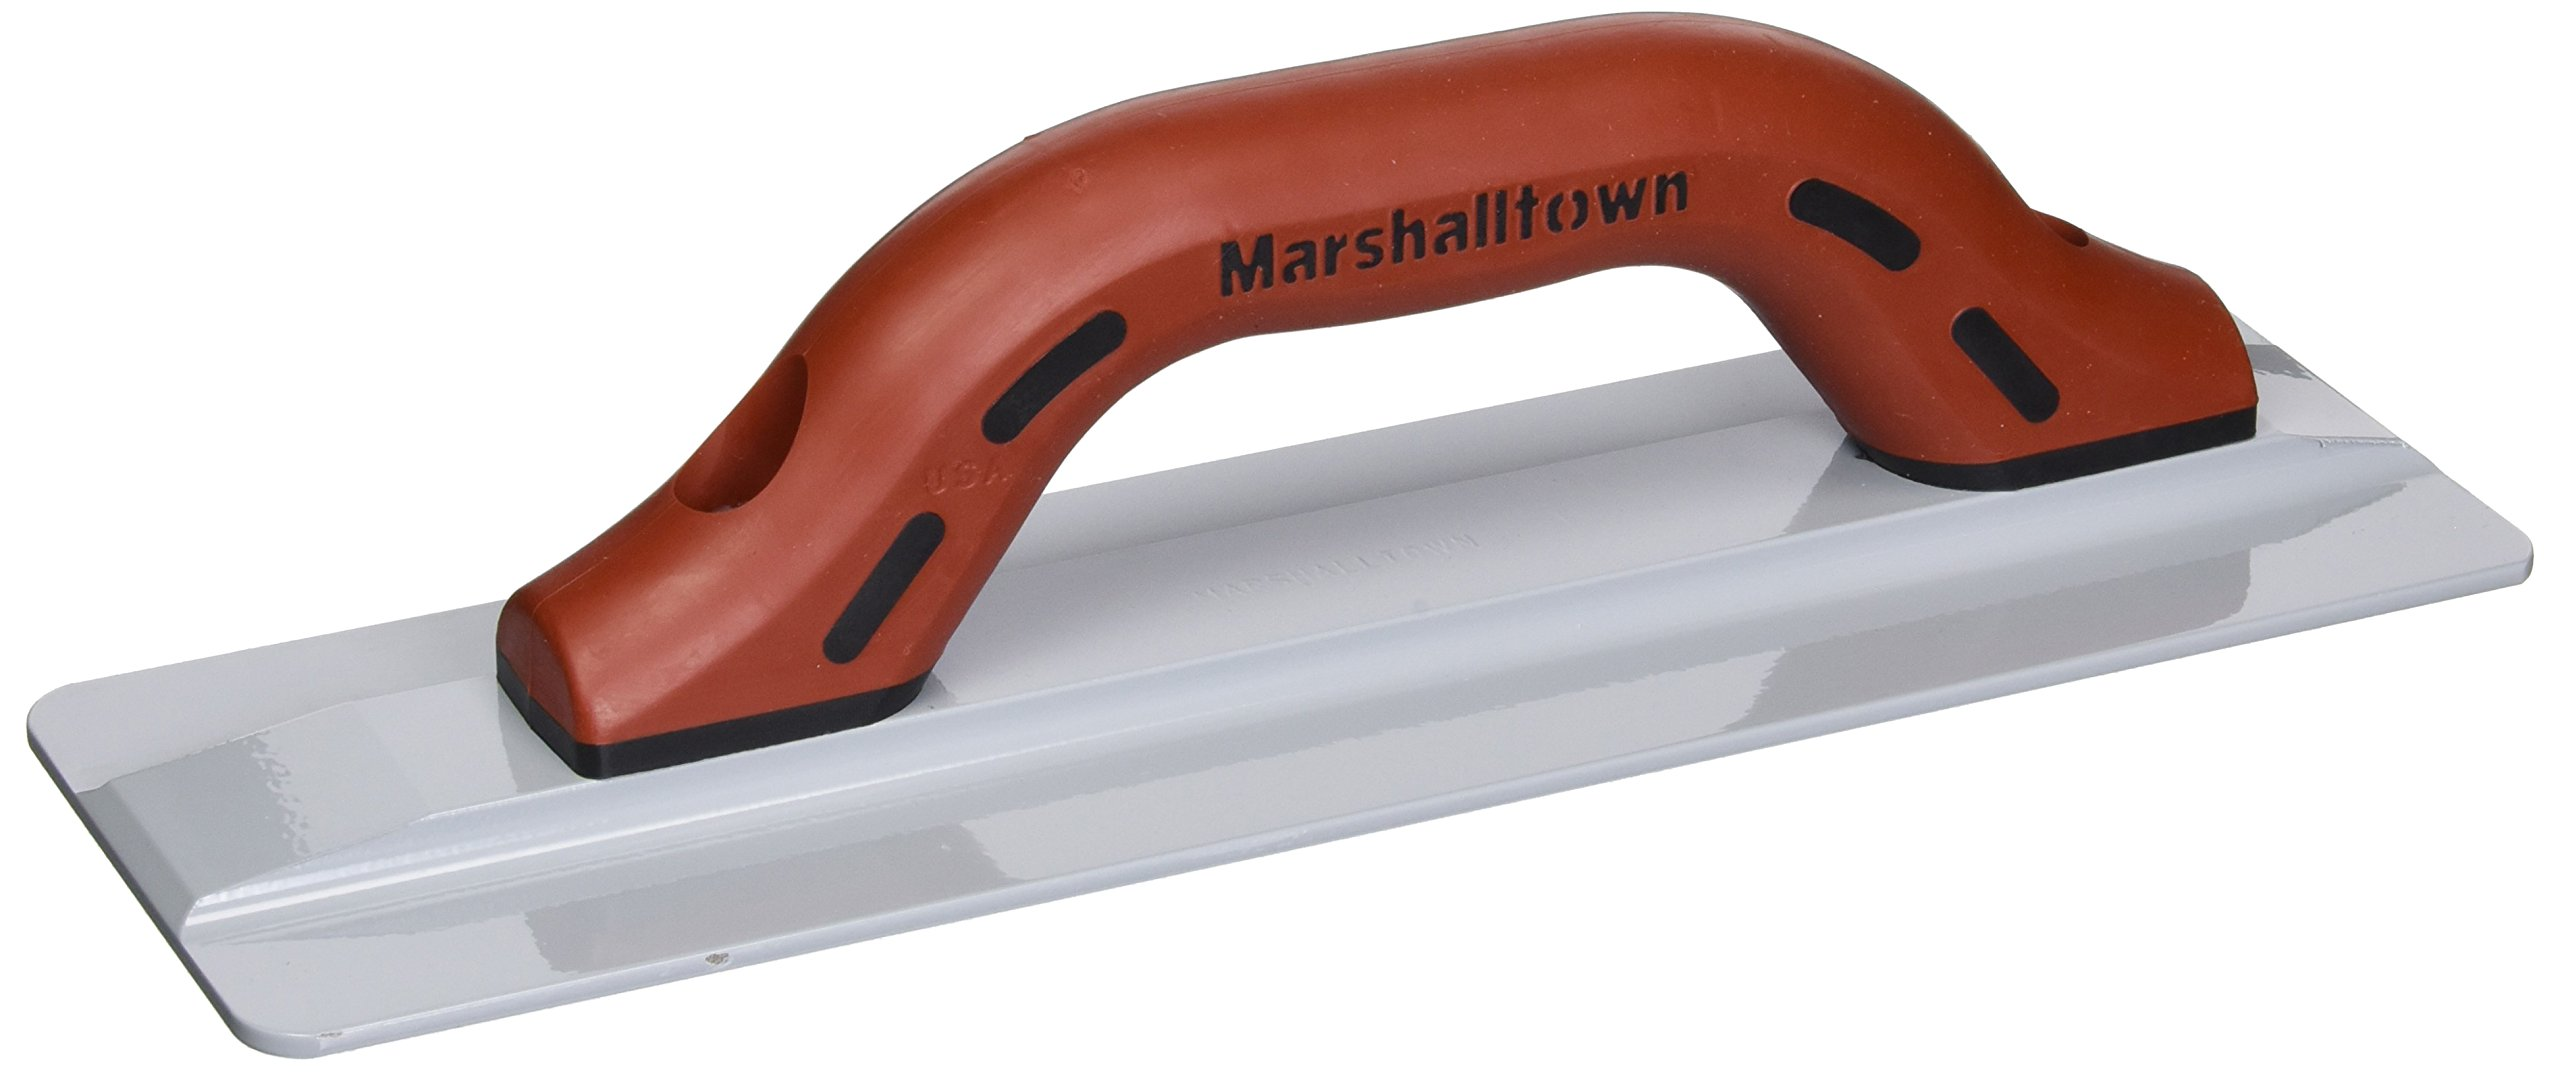 MARSHALLTOWN The Premier Line 734D 12-Inch by 3-3/4-Inch The Hog Magnesium Hand Float with DuraSoft Handle